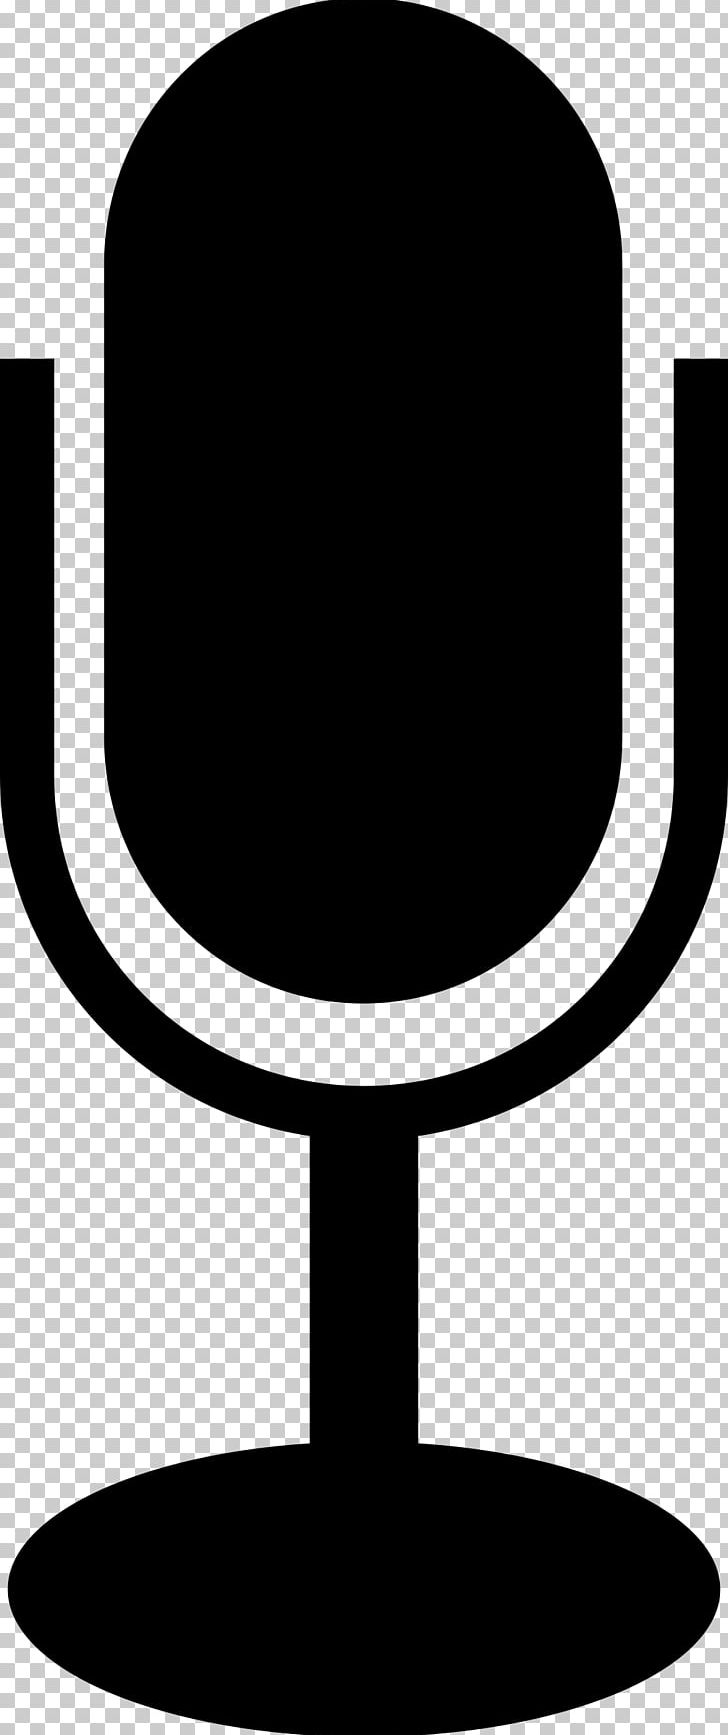 Wireless Microphone Computer Icons PNG, Clipart, Black And White, Chair, Computer Icons, Download, Electronics Free PNG Download